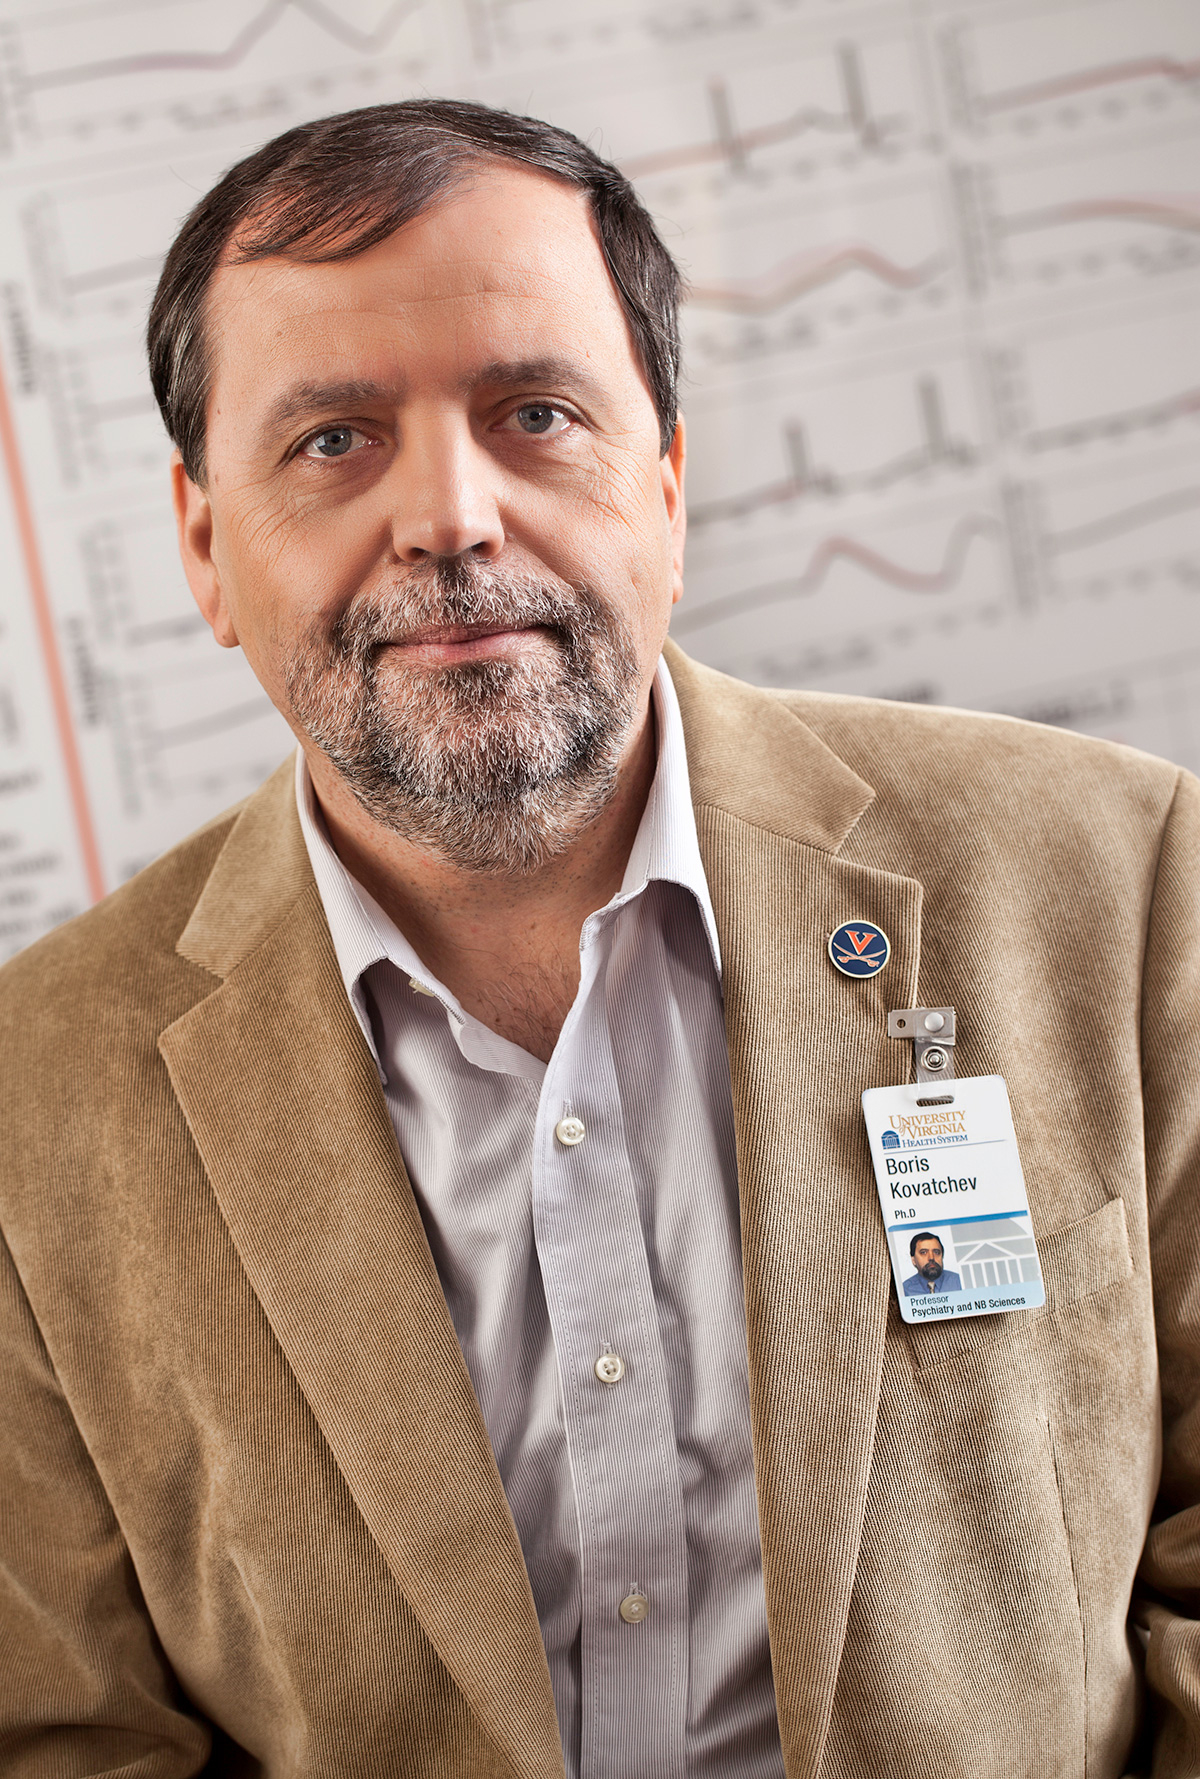 Boris Kovatchev has worked with researchers at UVA and elsewhere to develop and refine the artificial pancreas, which will soon undergo human trials.